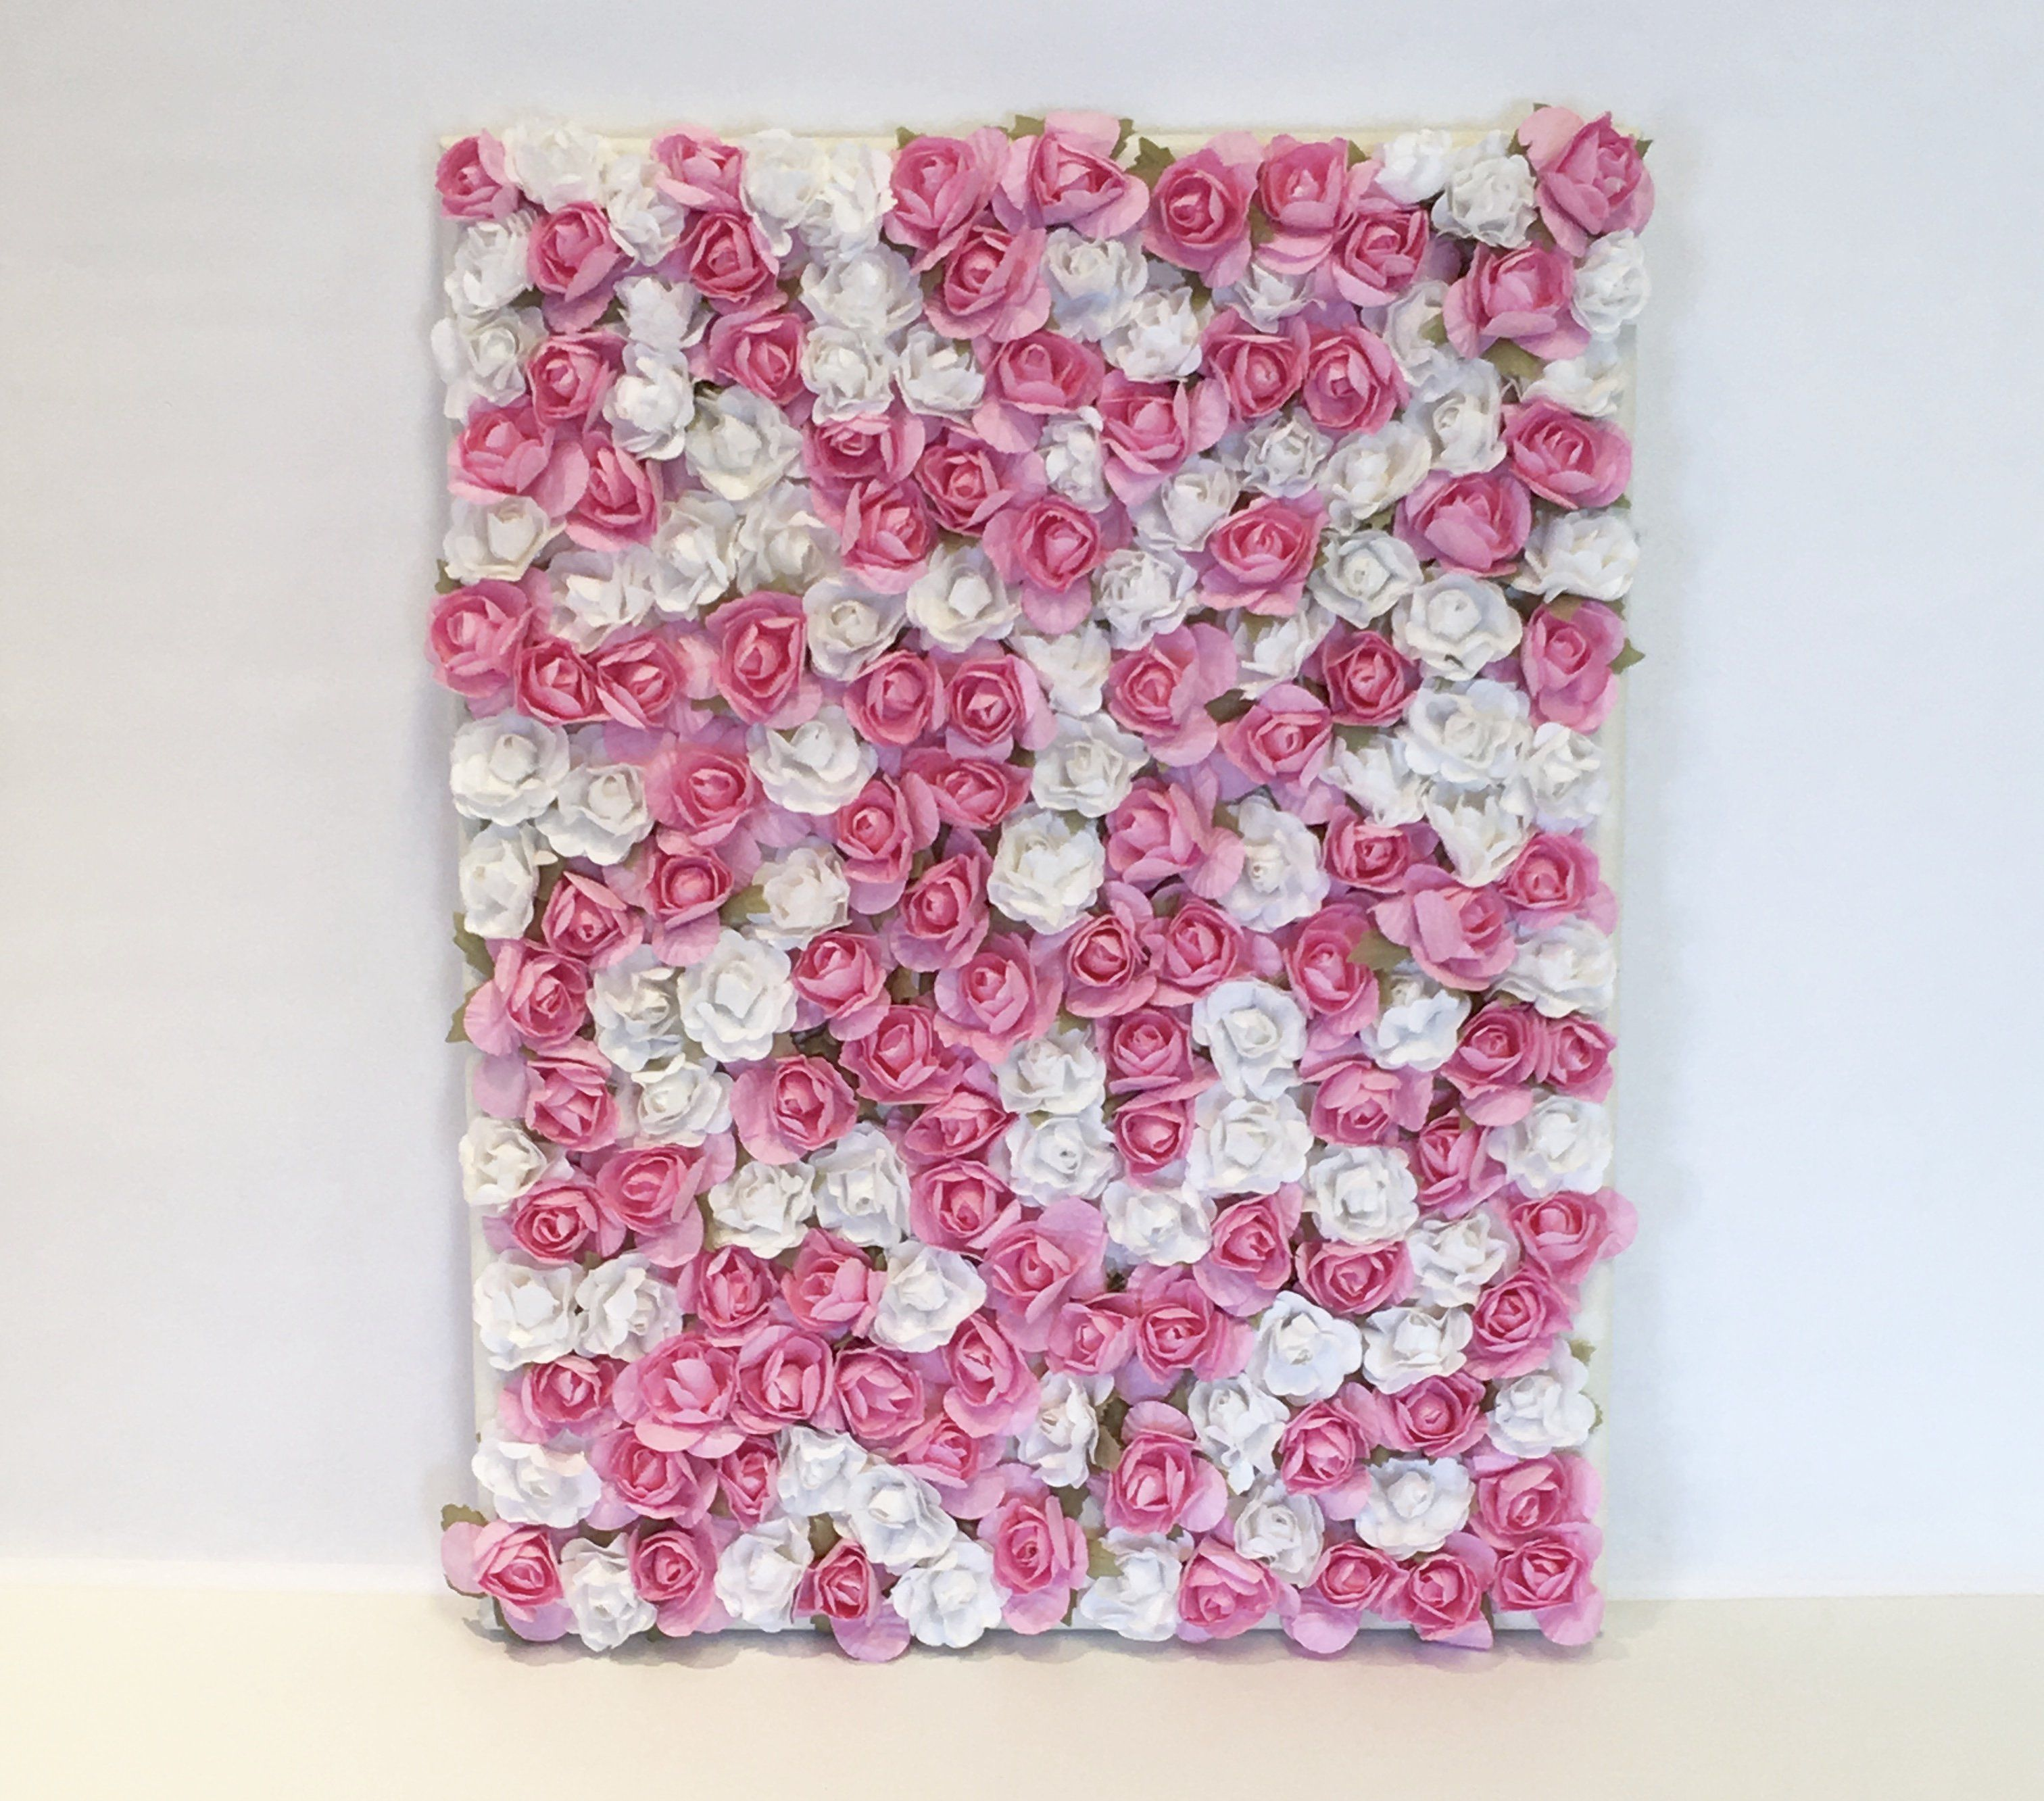 Pink and White Rose Paper Flower Wall Decor (11 x 14